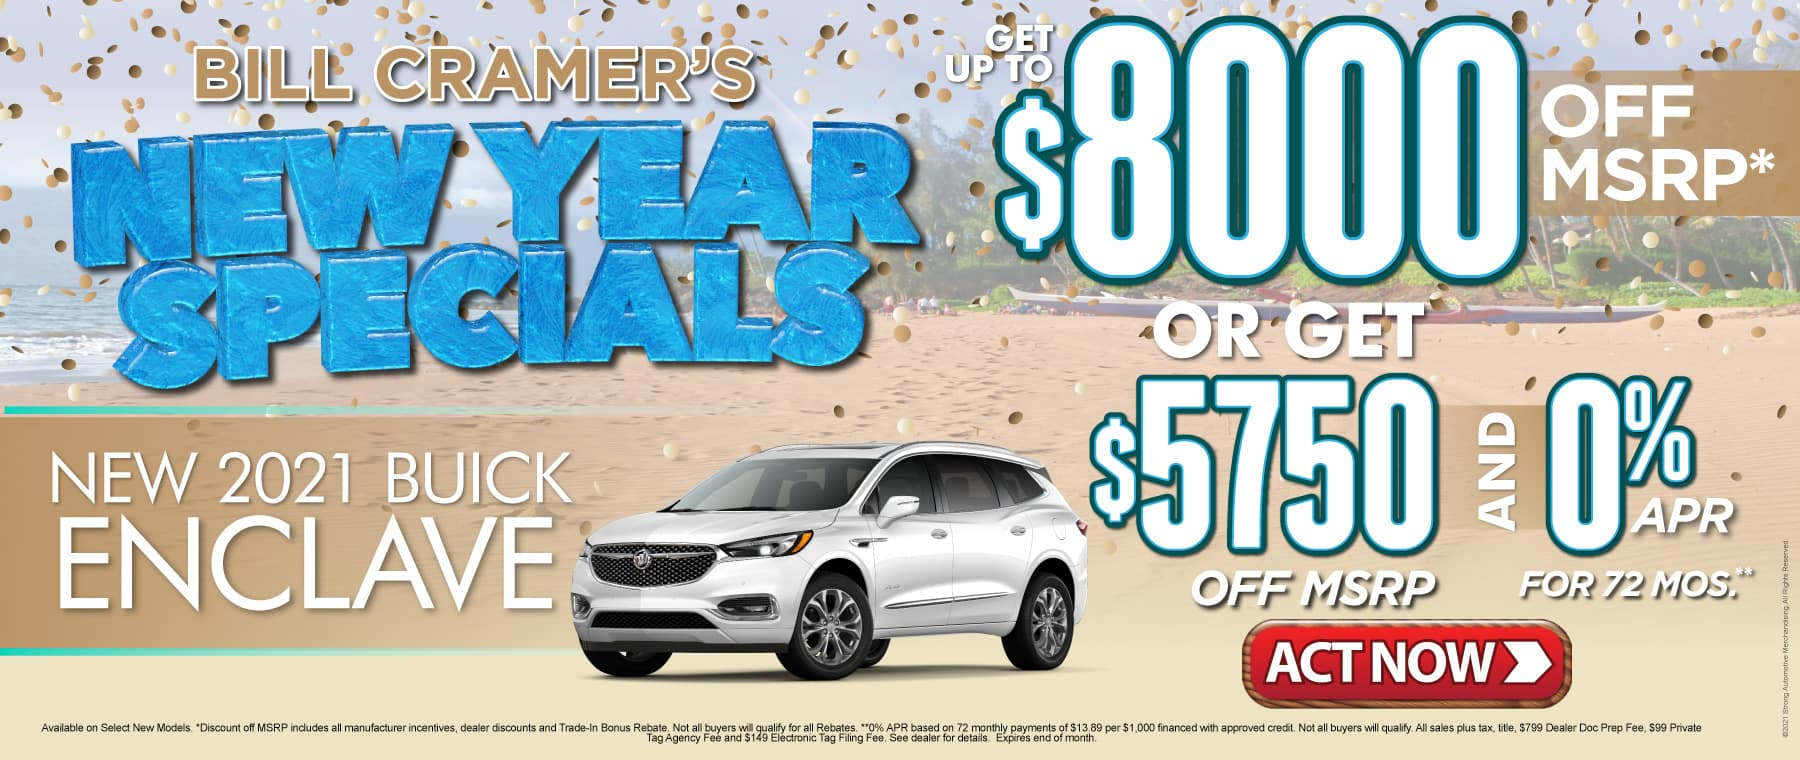 New 2021 Buick Enclave - Get up to $8000 off msrp - Act Now